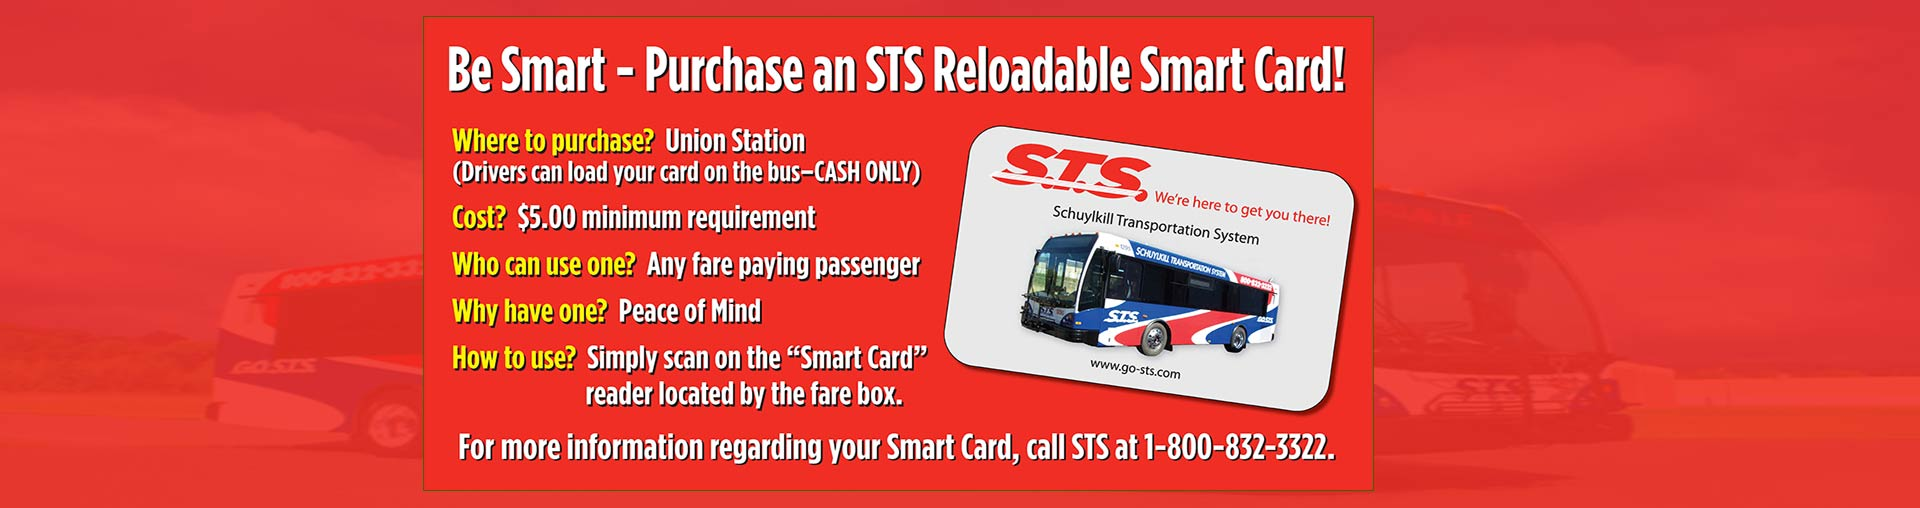 STS Reloadable Smart Cards